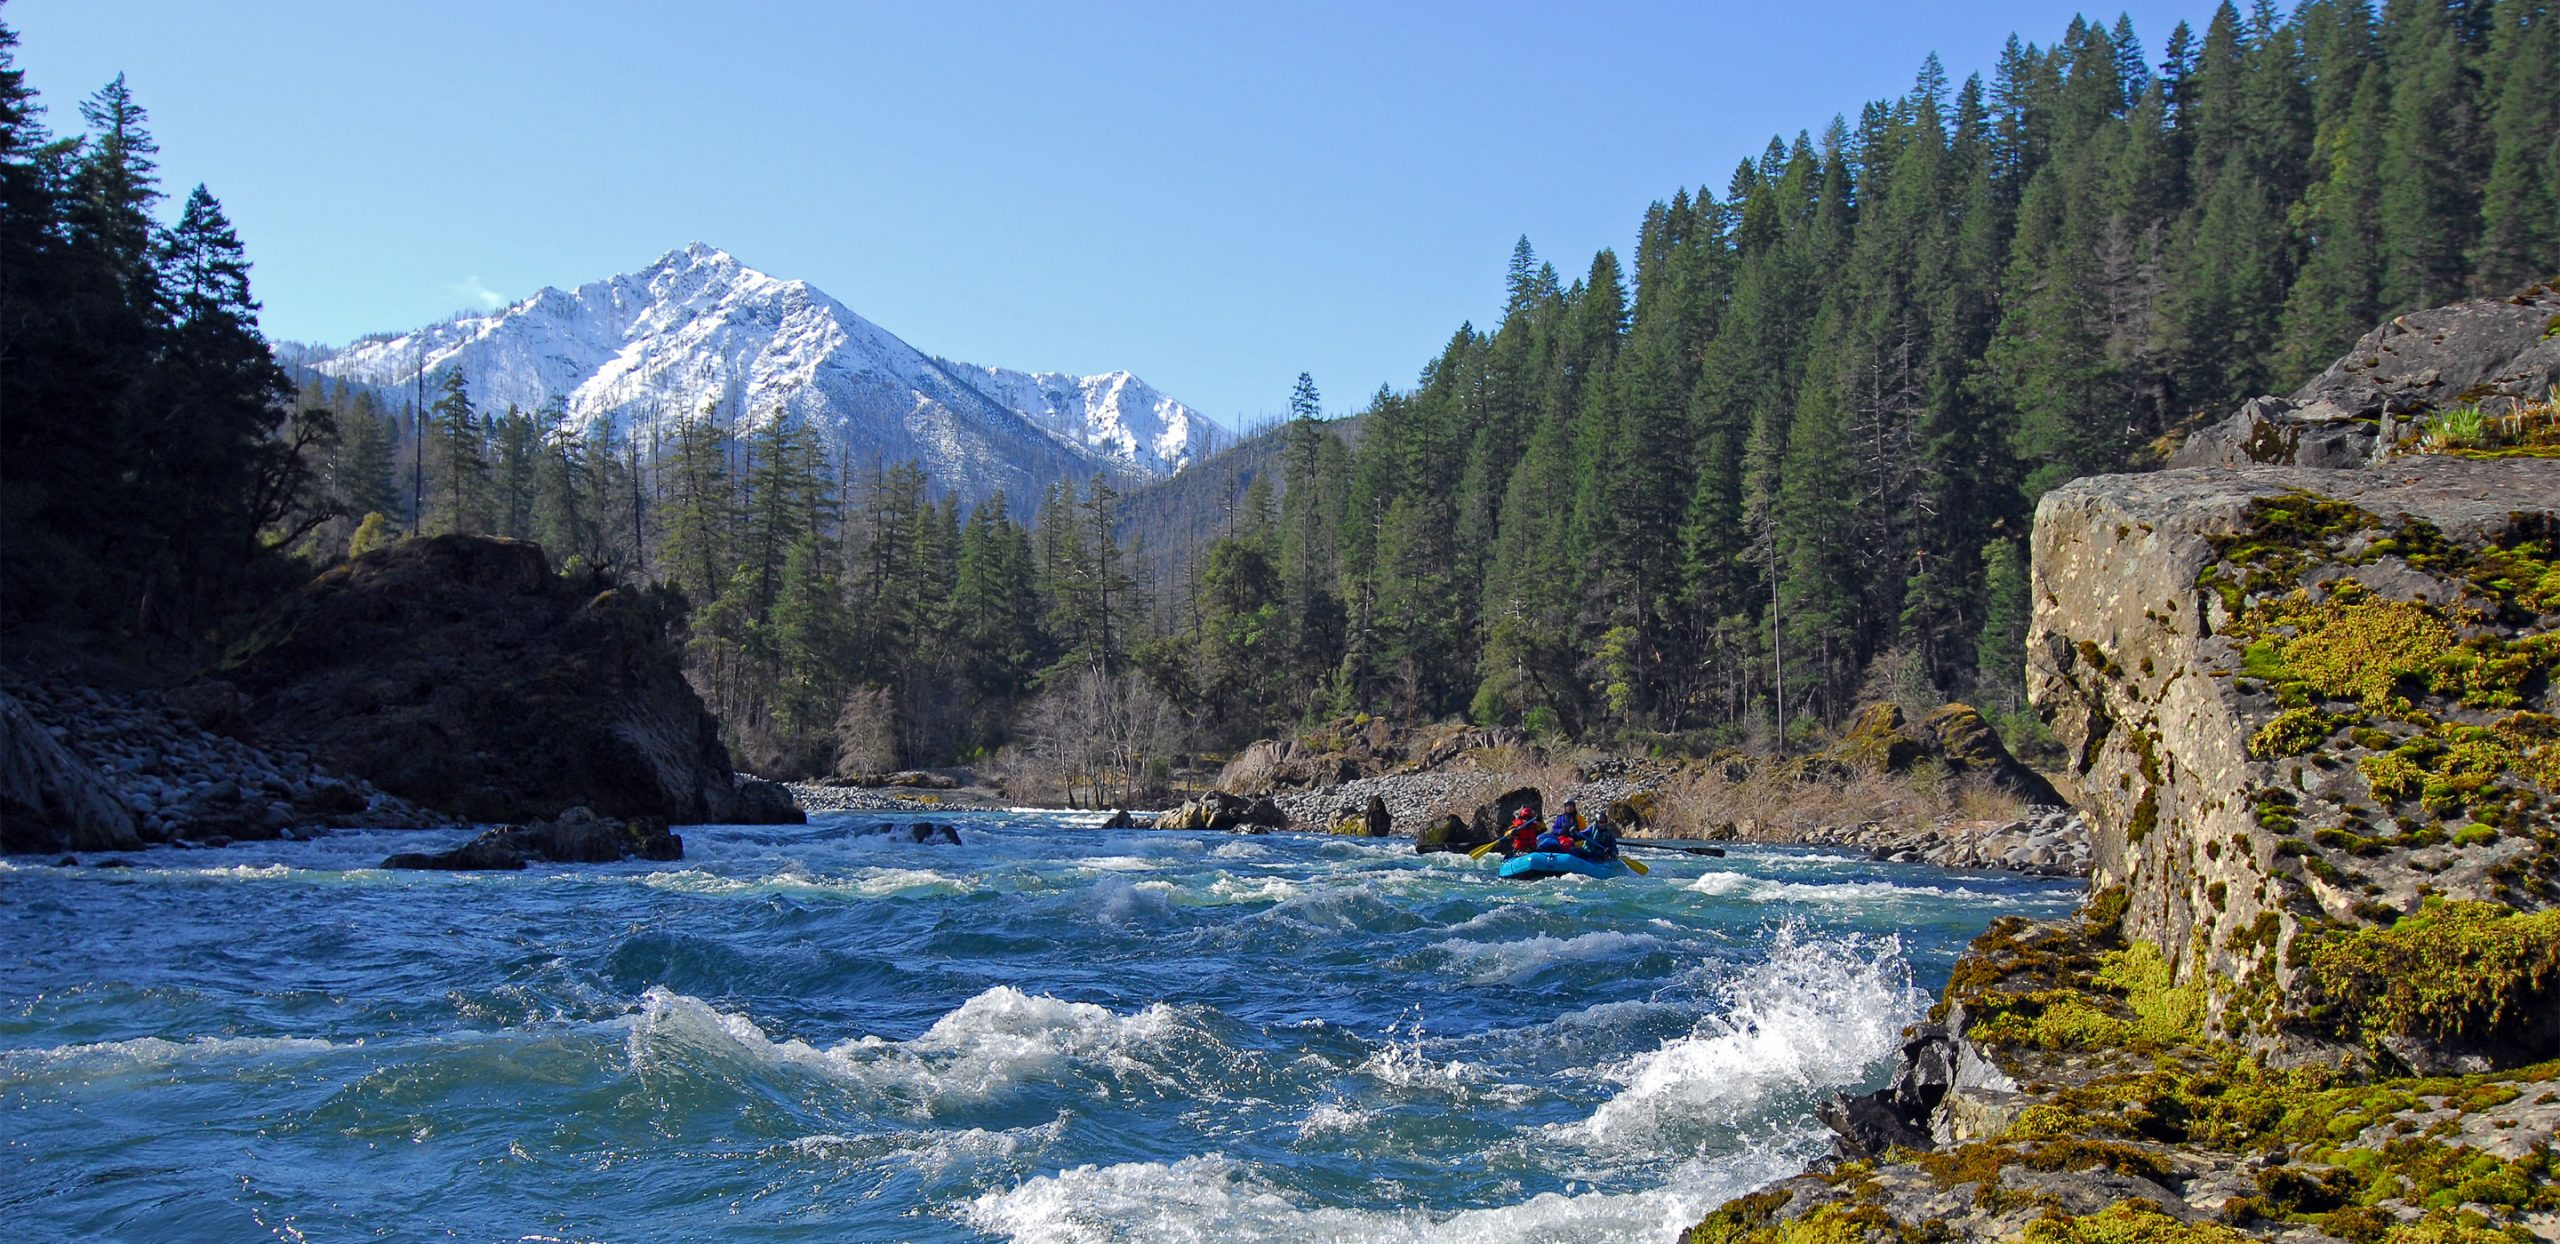 Illinois River Rafting, Oregon - Klondike Peak